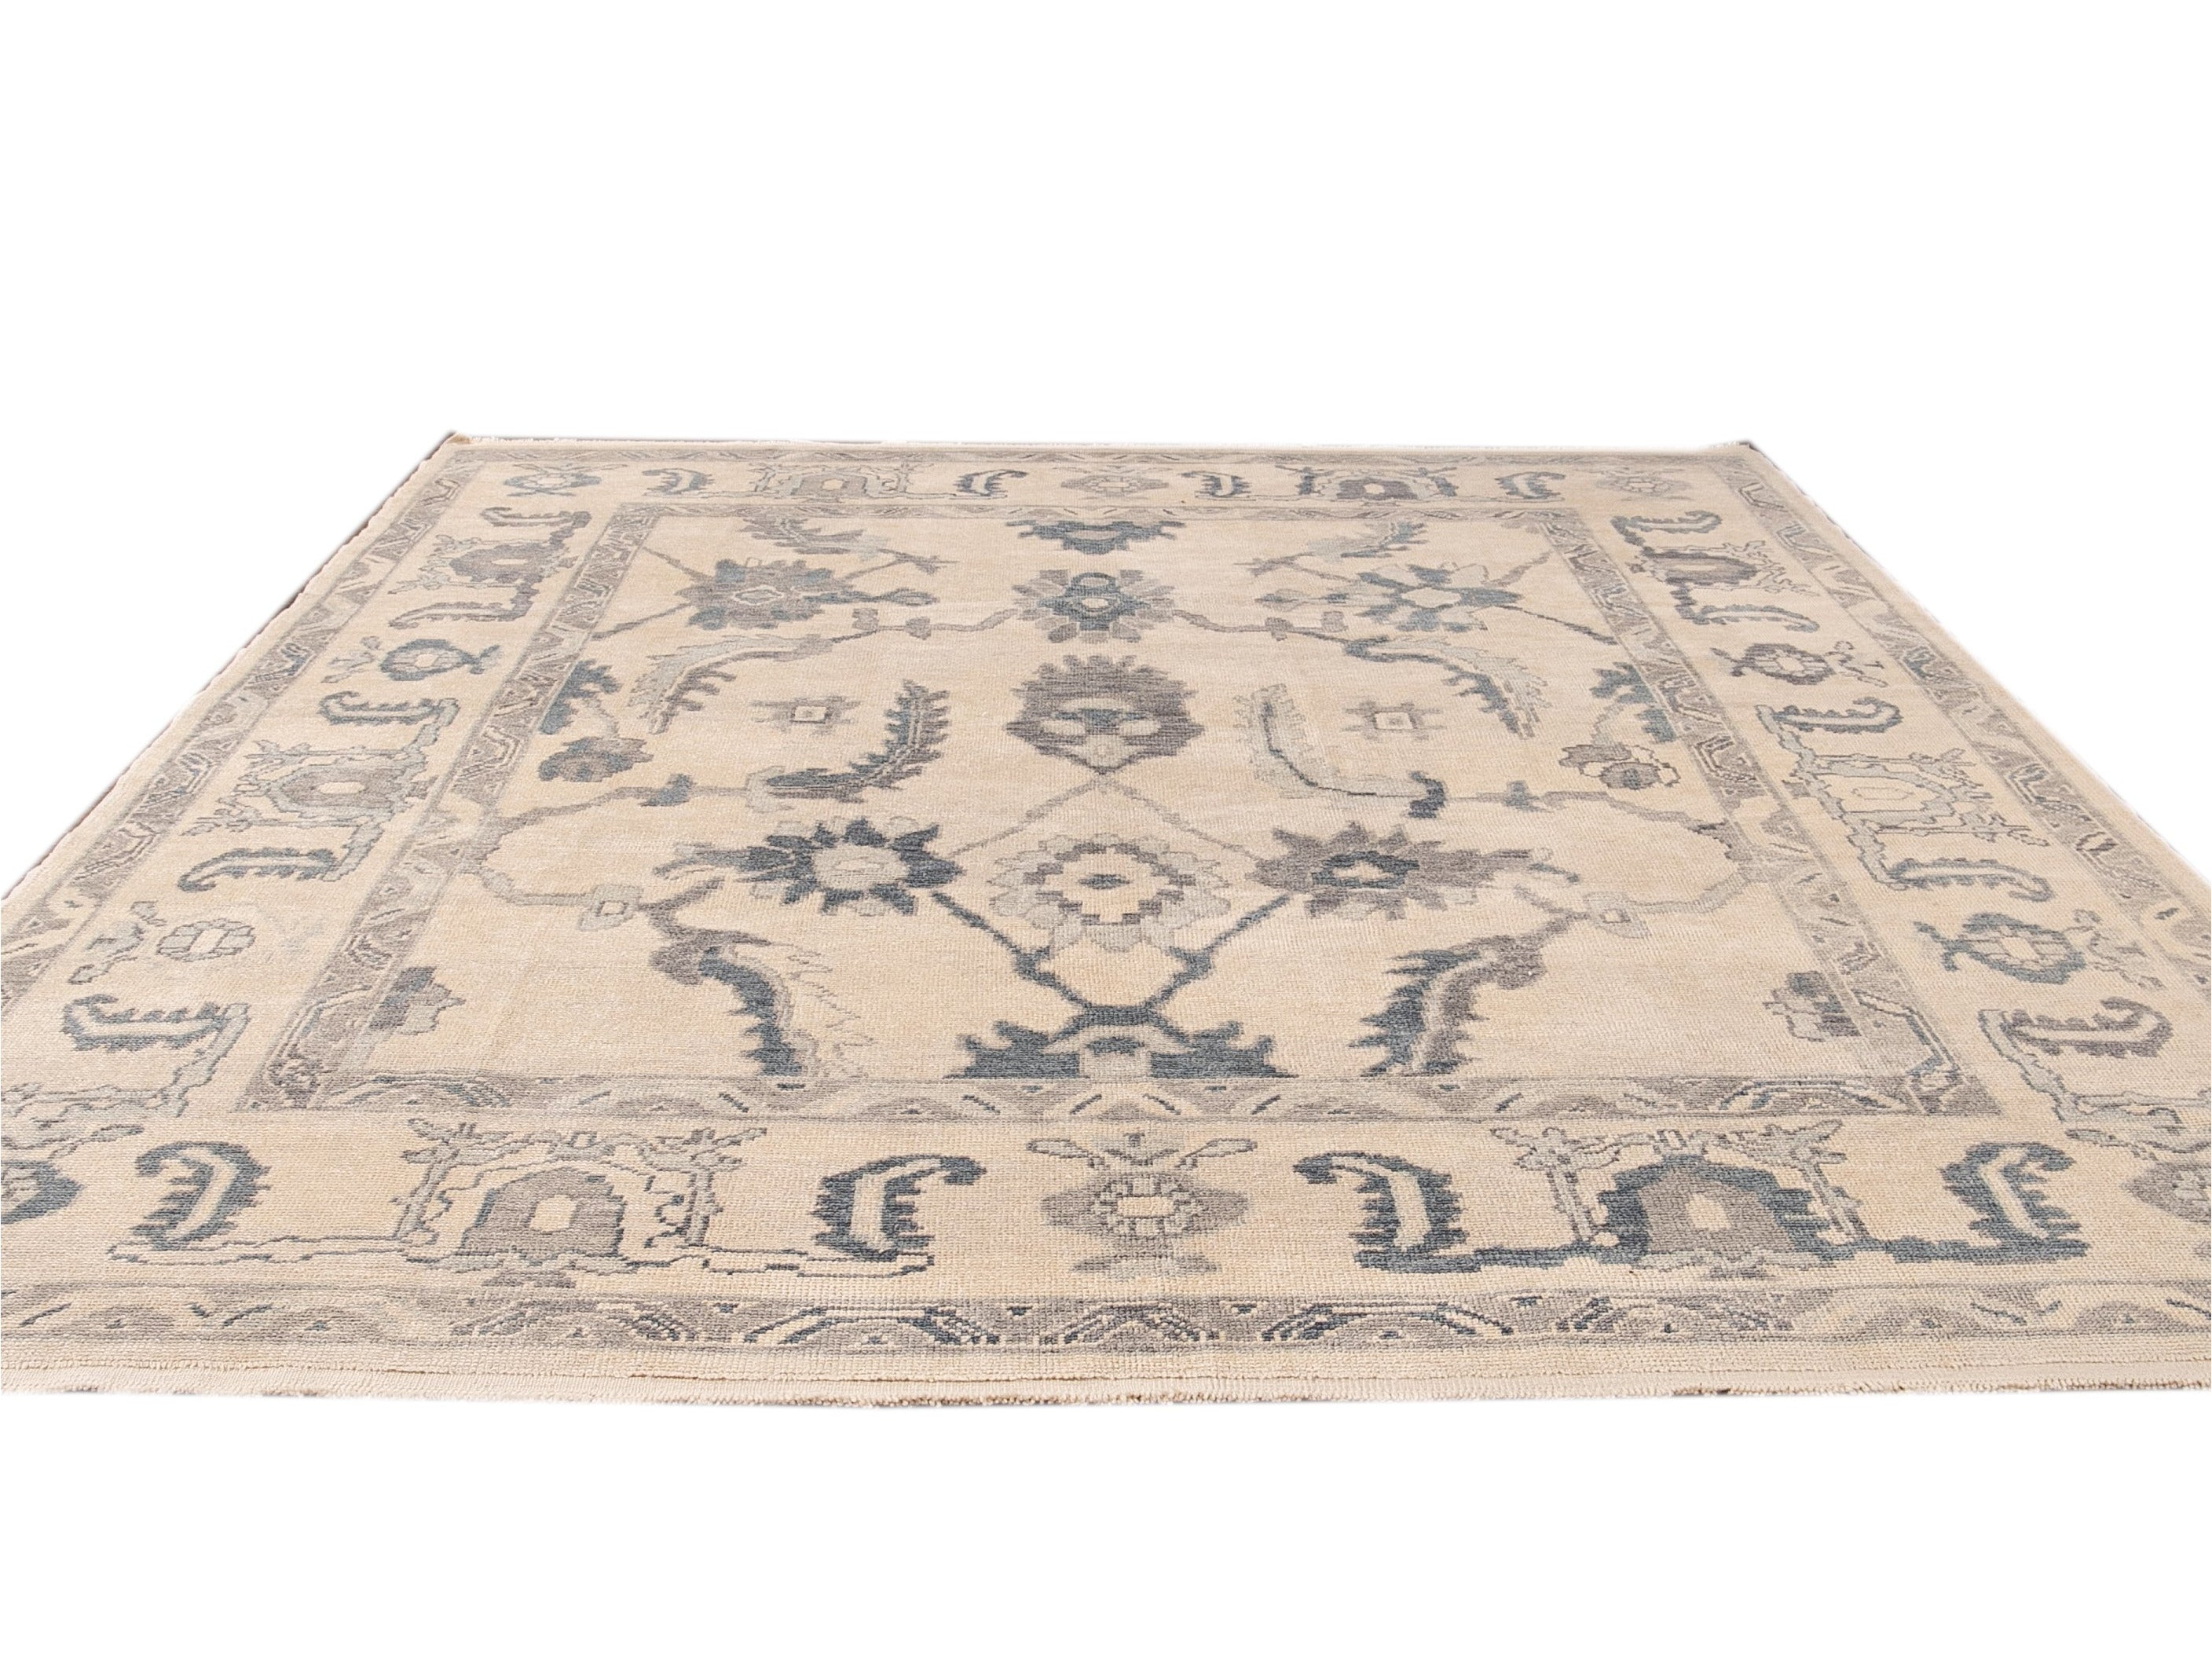 Modern Beige and Blue Turkish Oushak Geometric Floral Handmade Wool Rug